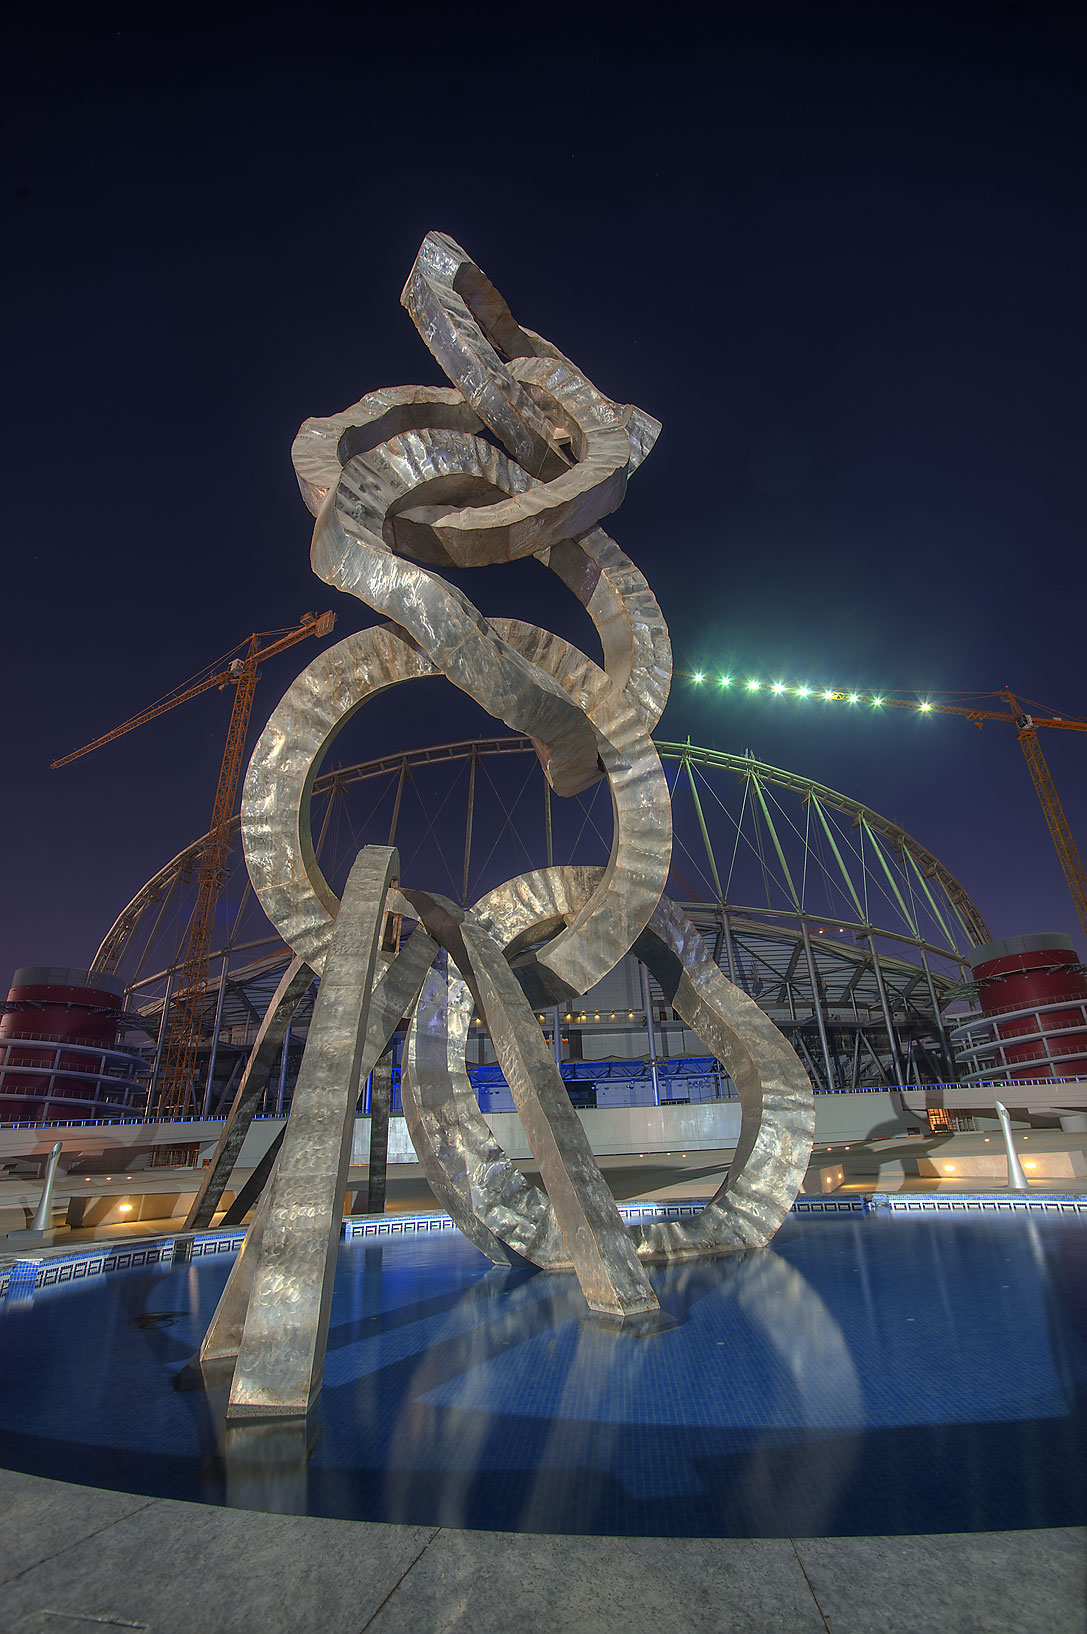 Olympic rings sculpture by Ahmed Al Bahrani in Aspire Zone. Doha, Qatar